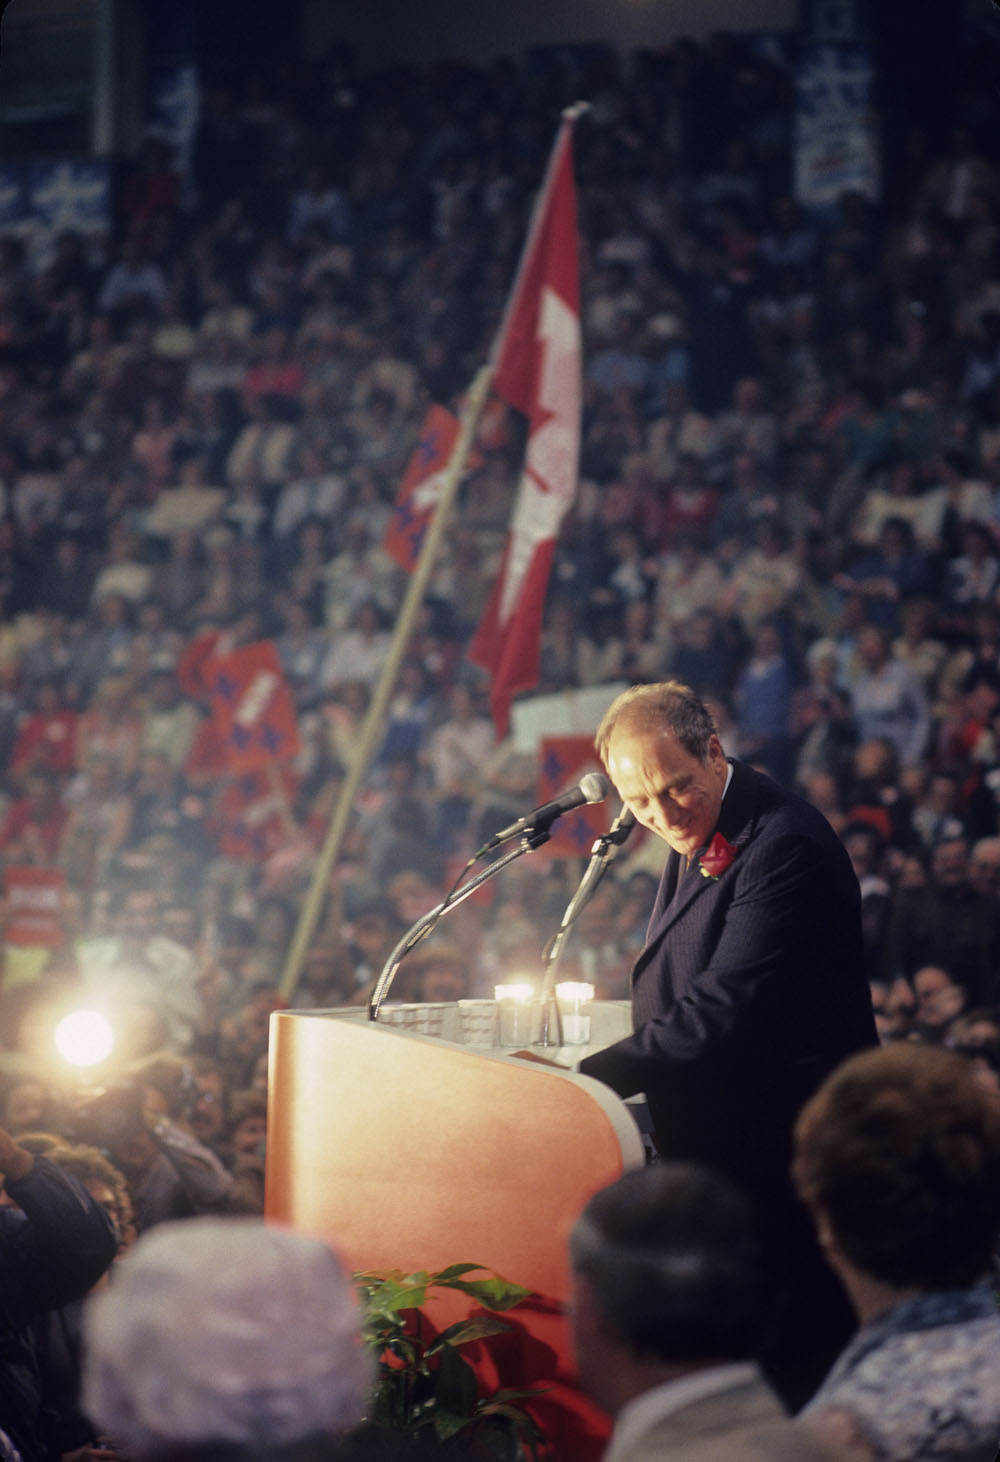 A man standing at a podium ducks his head, smiling. He speaks to a huge crowd.